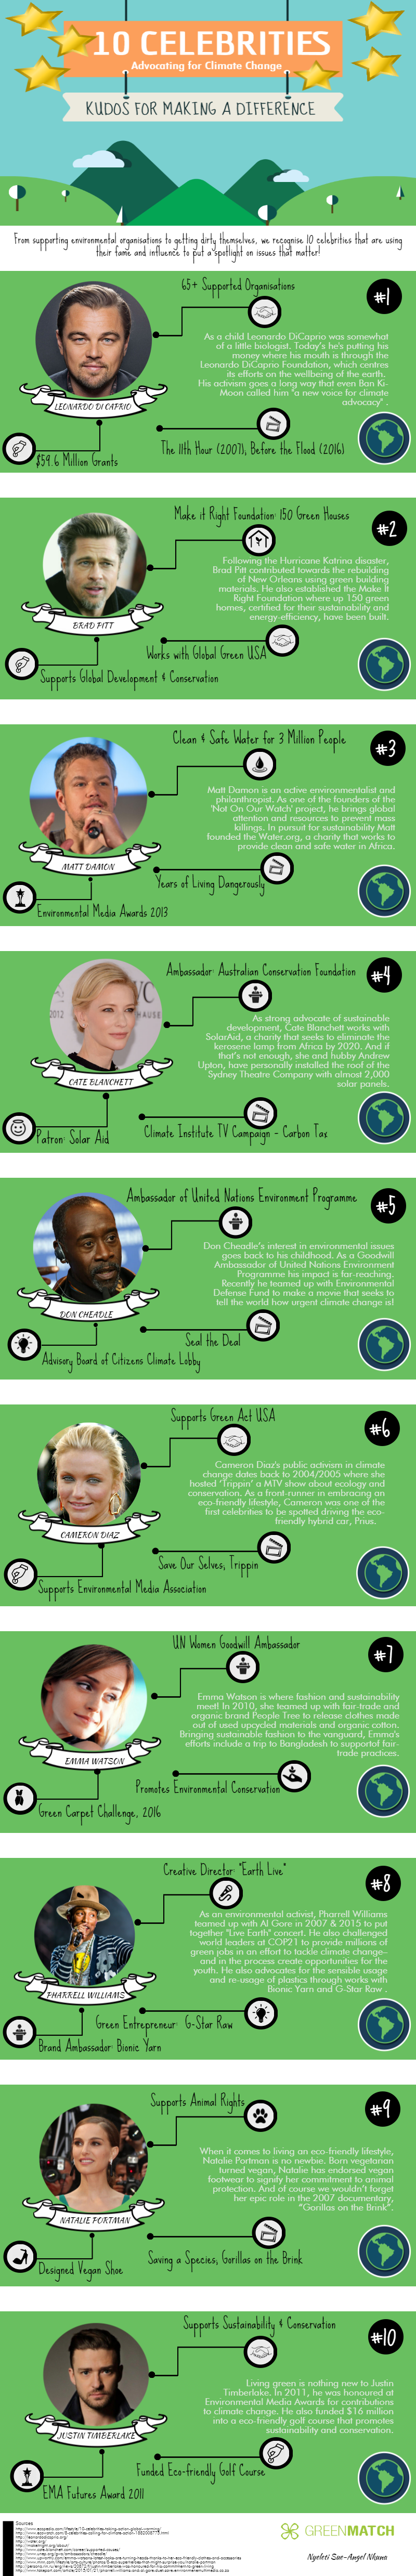 Celebrities Making a Difference in Saving the Planet